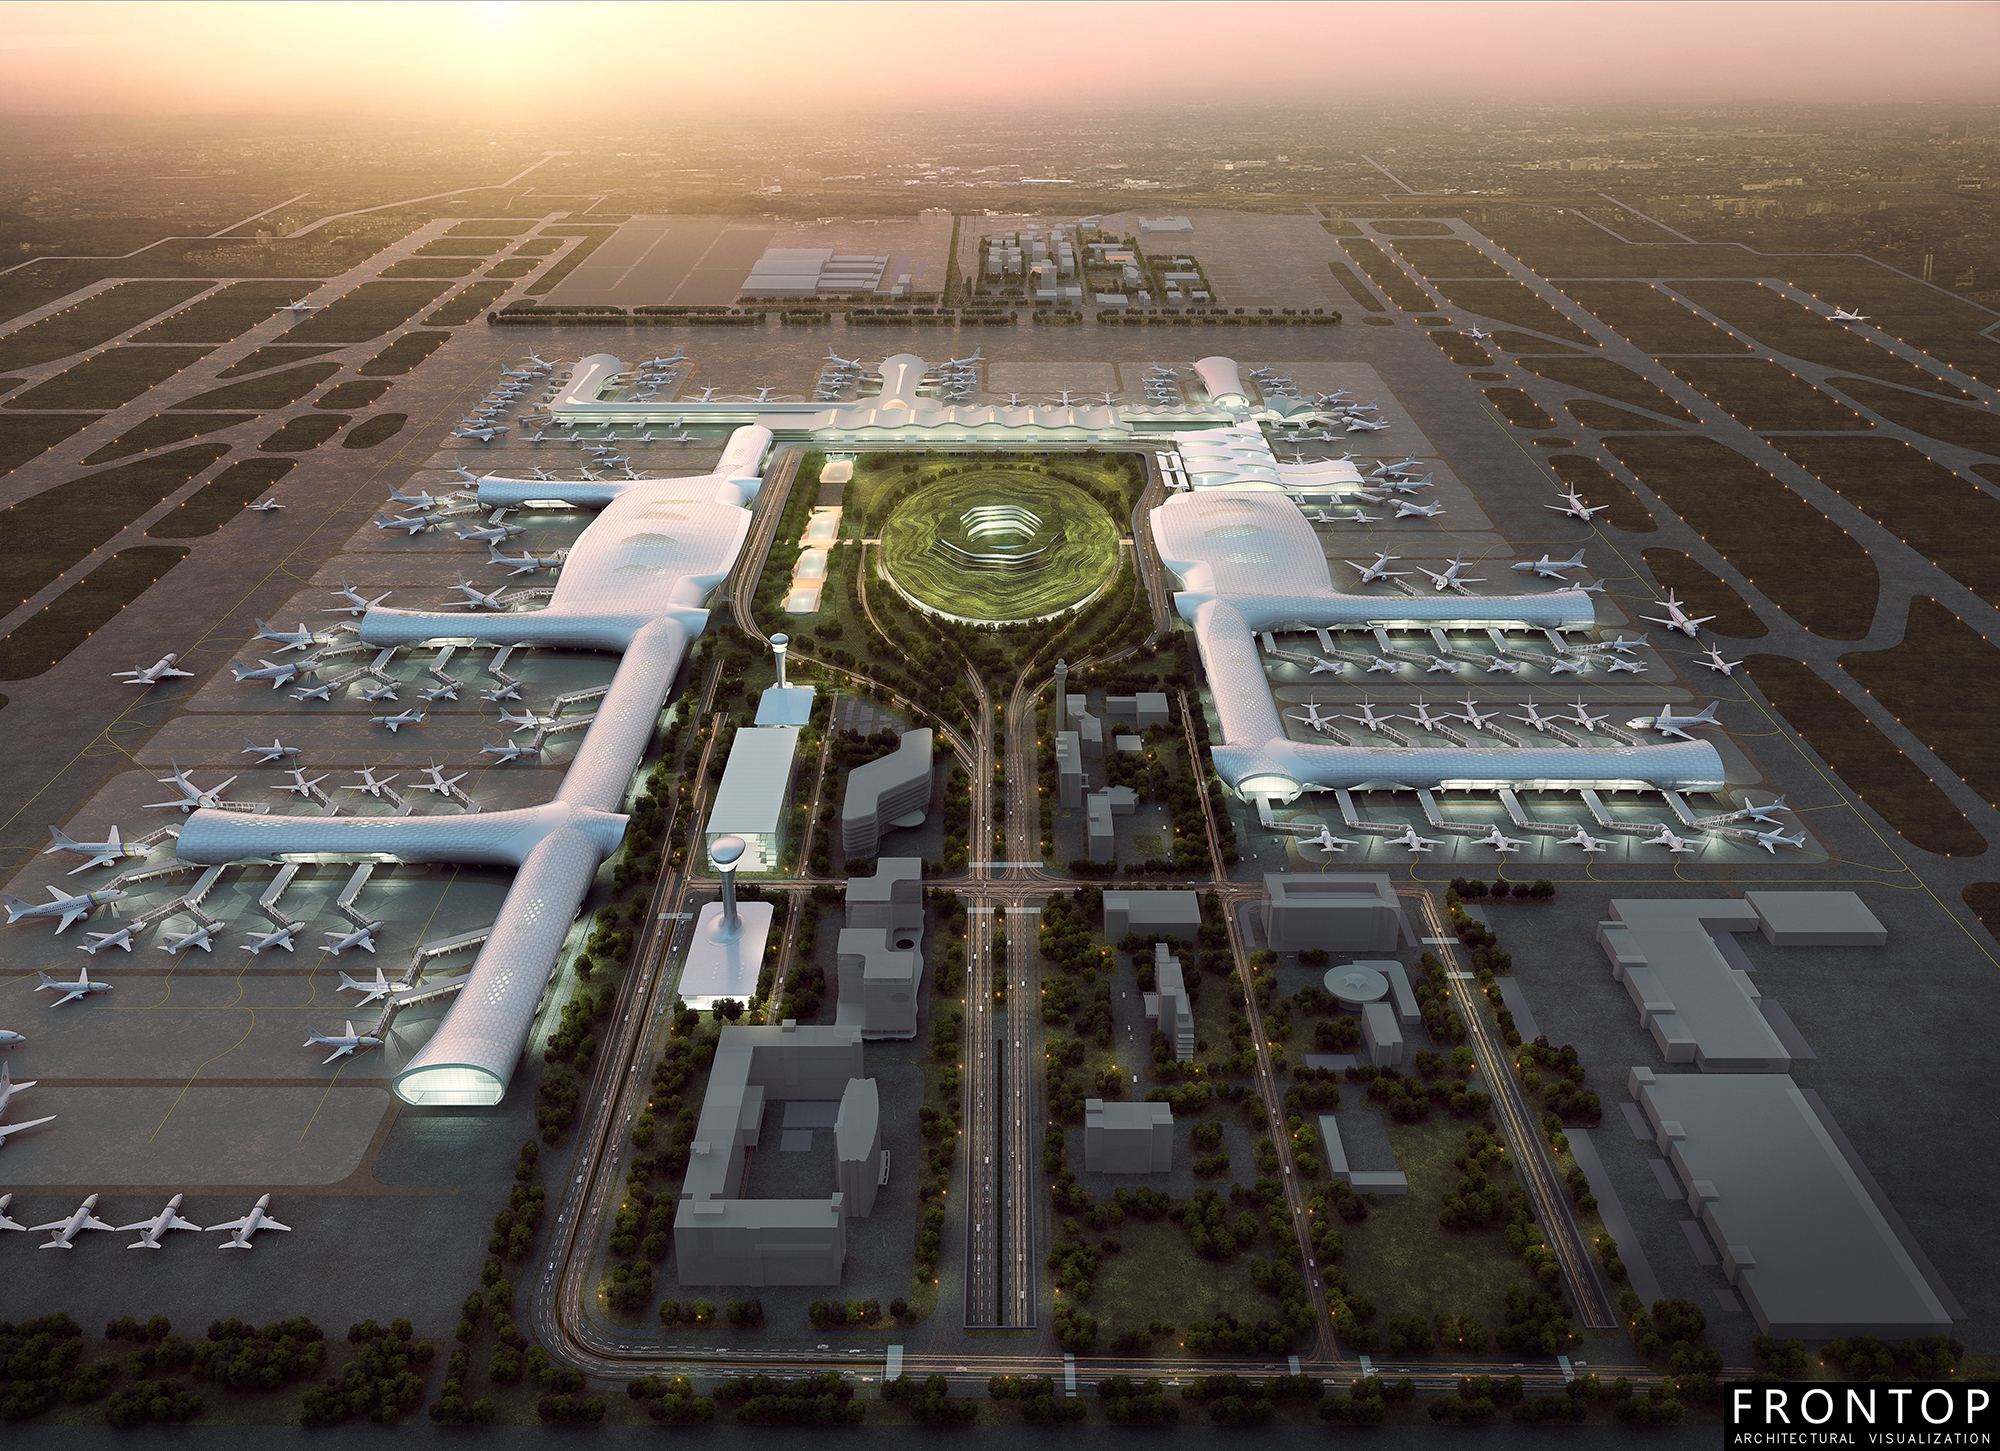 2017 Good Quality 3d Rendering+A9:A44 - Airport – Frontop Featured Image